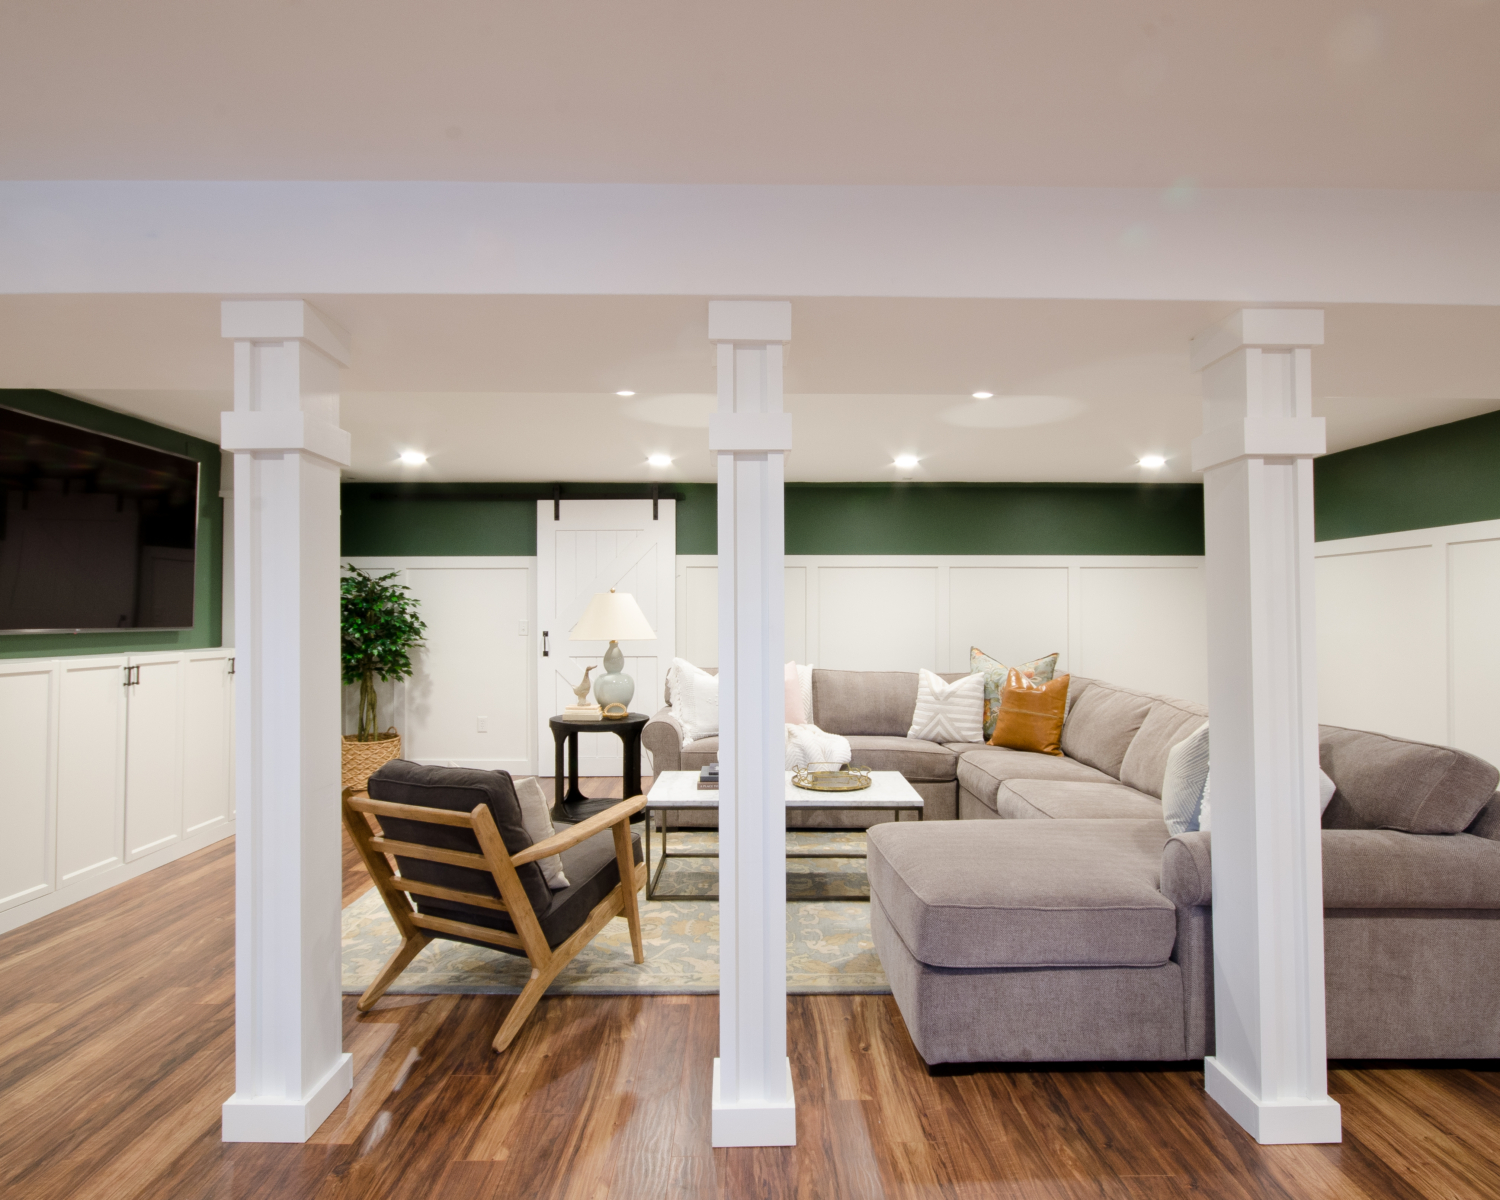 How to turn support poles into columns - an easy to follow tutorial showing how to cover basement support poles with simple building materials so they become stately columns. Just the extra polish a finished basement family room needs to make it feel less like a basement!